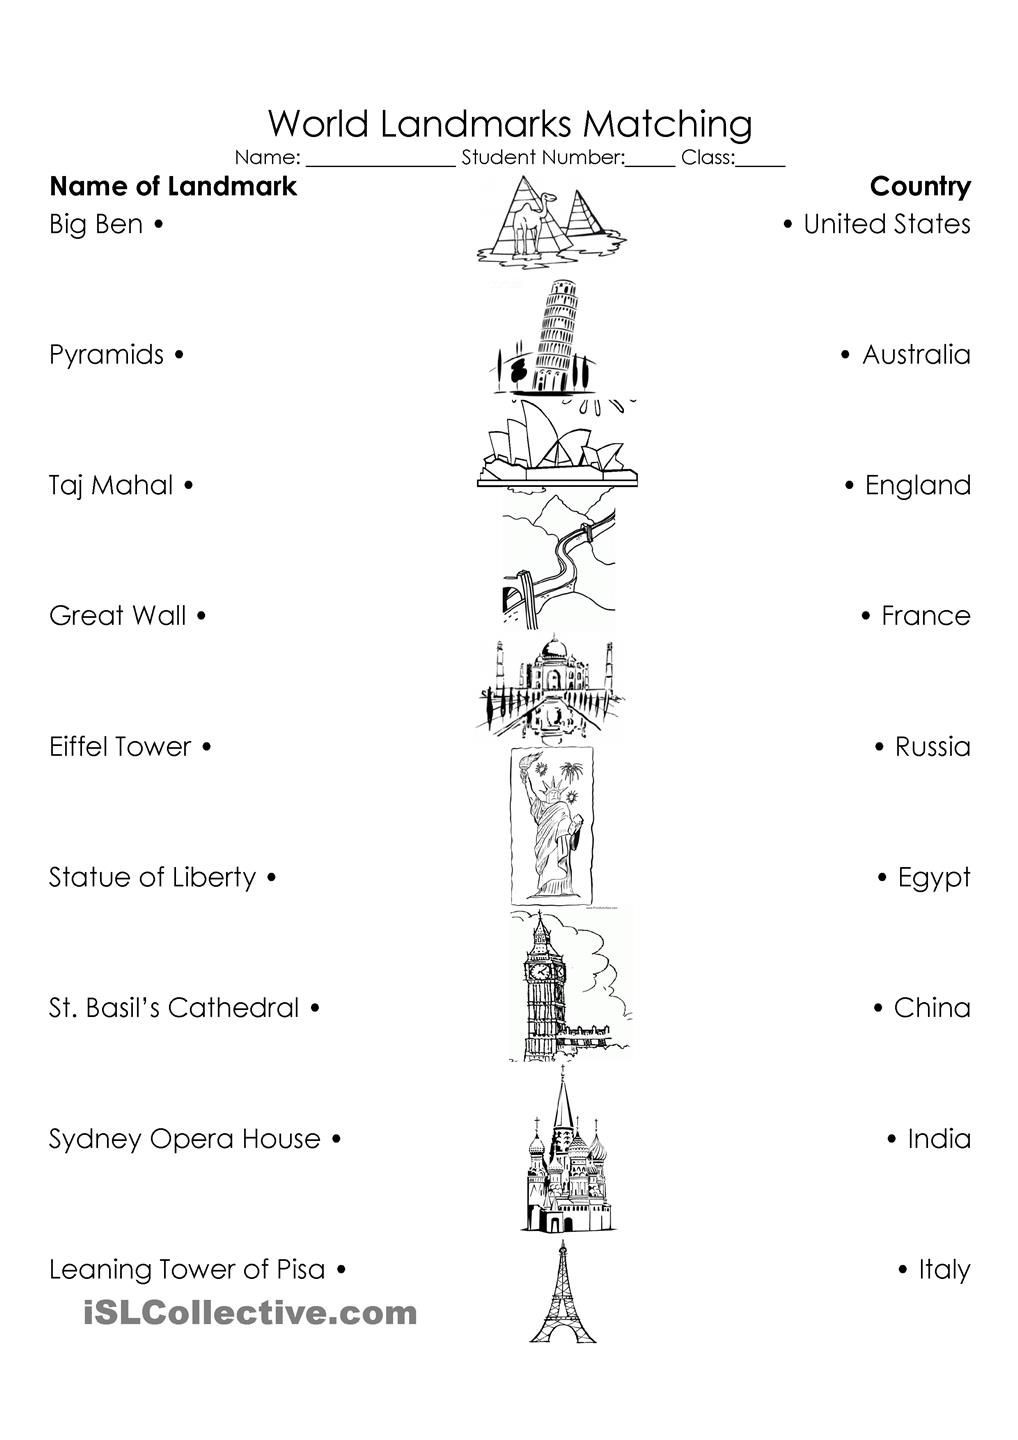 1st Grade social Studies Worksheets World Landmarks Triple Match